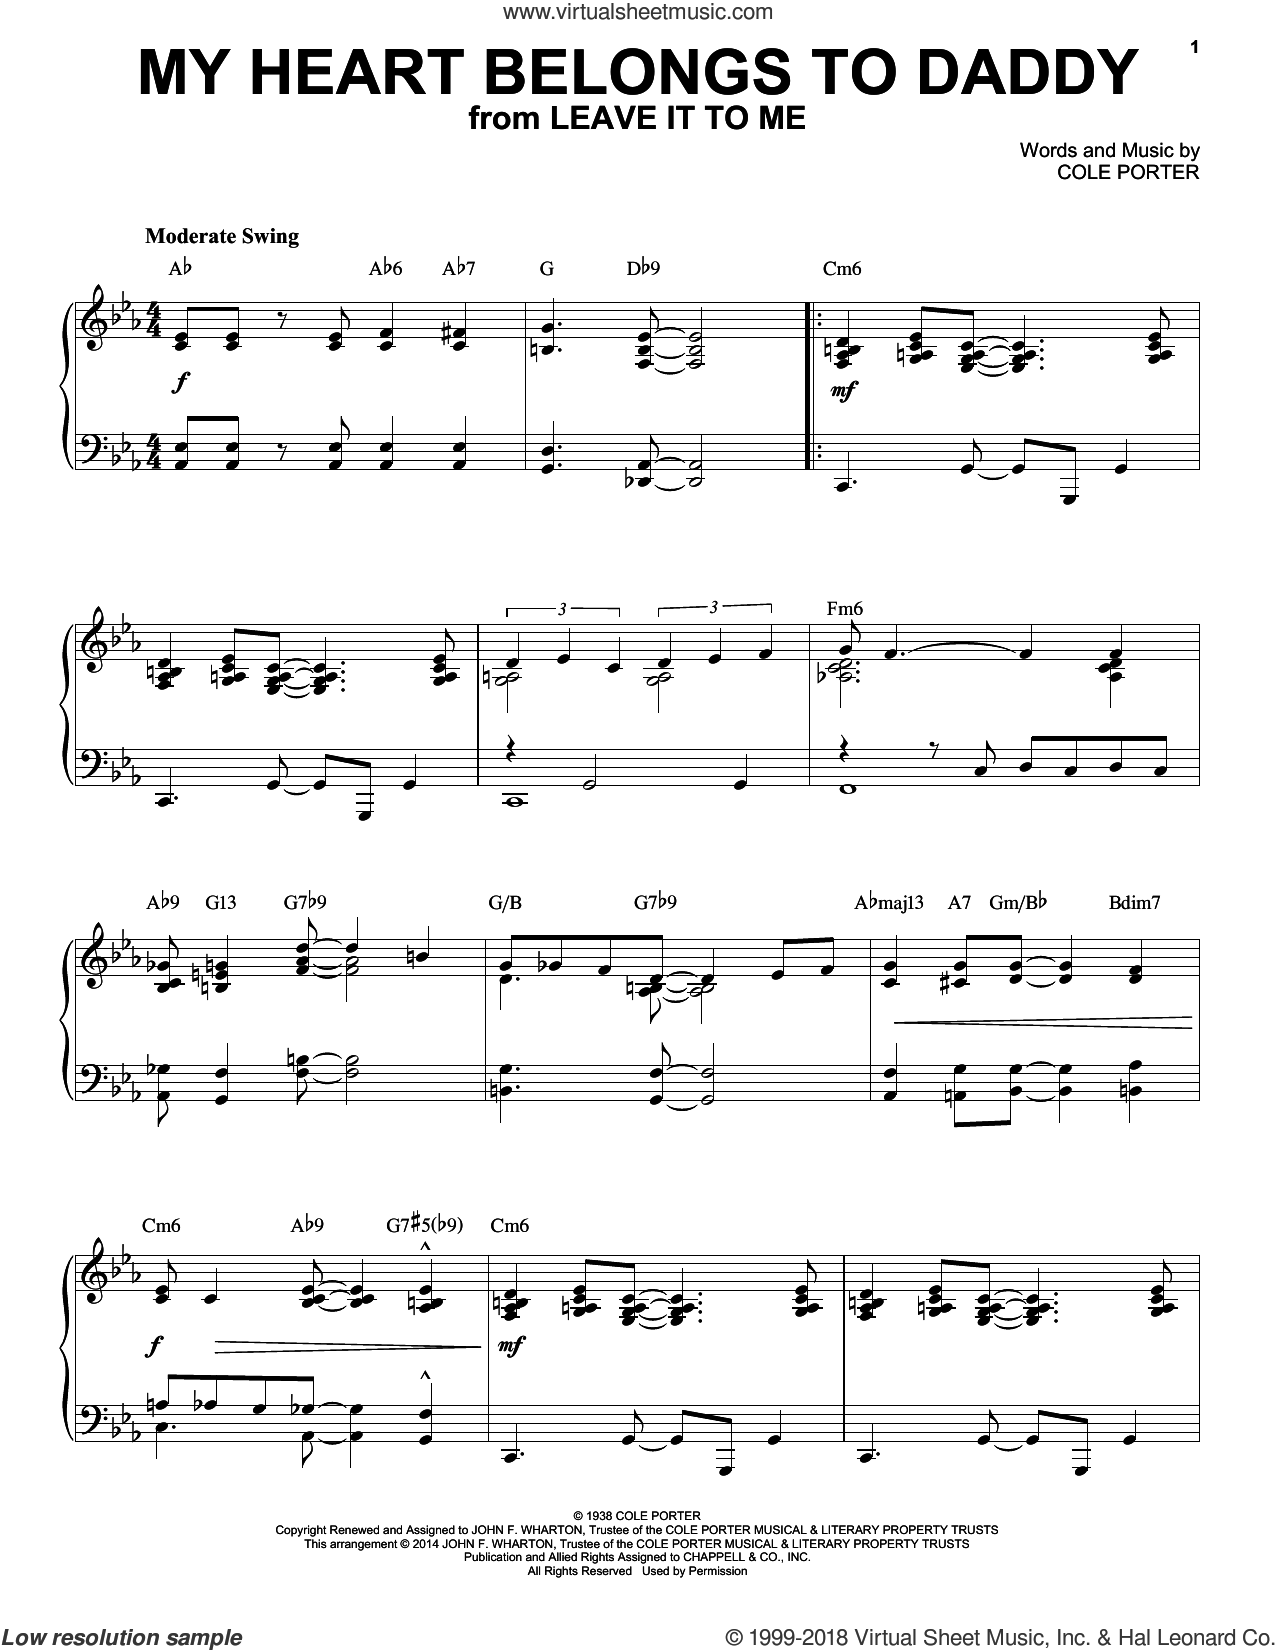 My Heart Belongs To Daddy sheet music for piano solo by Cole Porter. Score Image Preview.